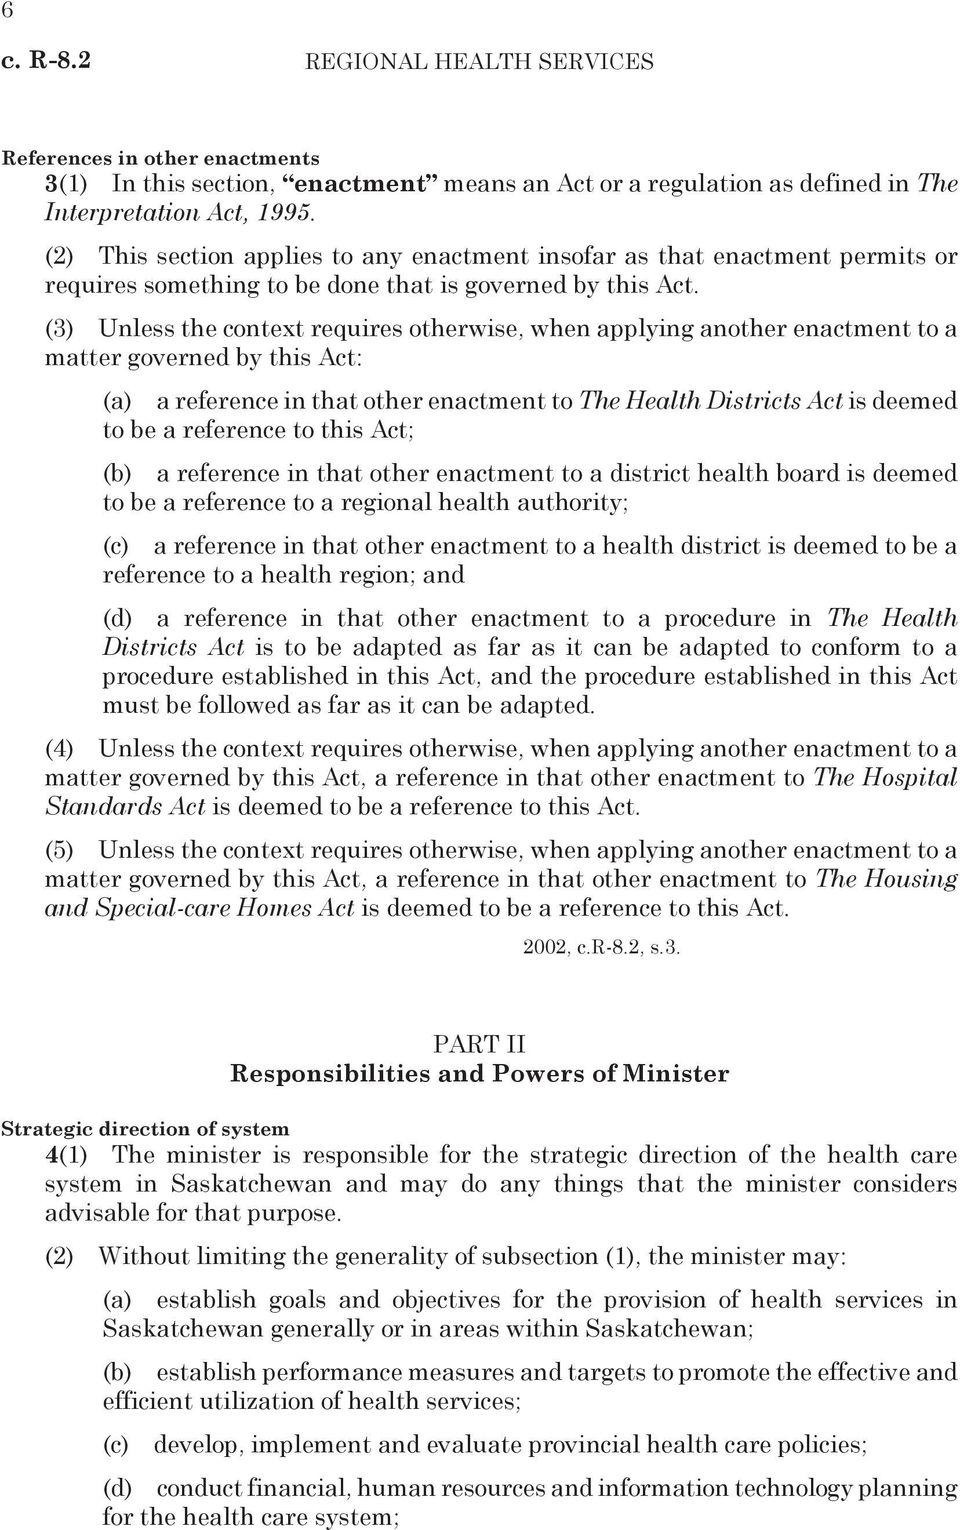 (3) Unless the context requires otherwise, when applying another enactment to a matter governed by this Act: (a) a reference in that other enactment to The Health Districts Act is deemed to be a